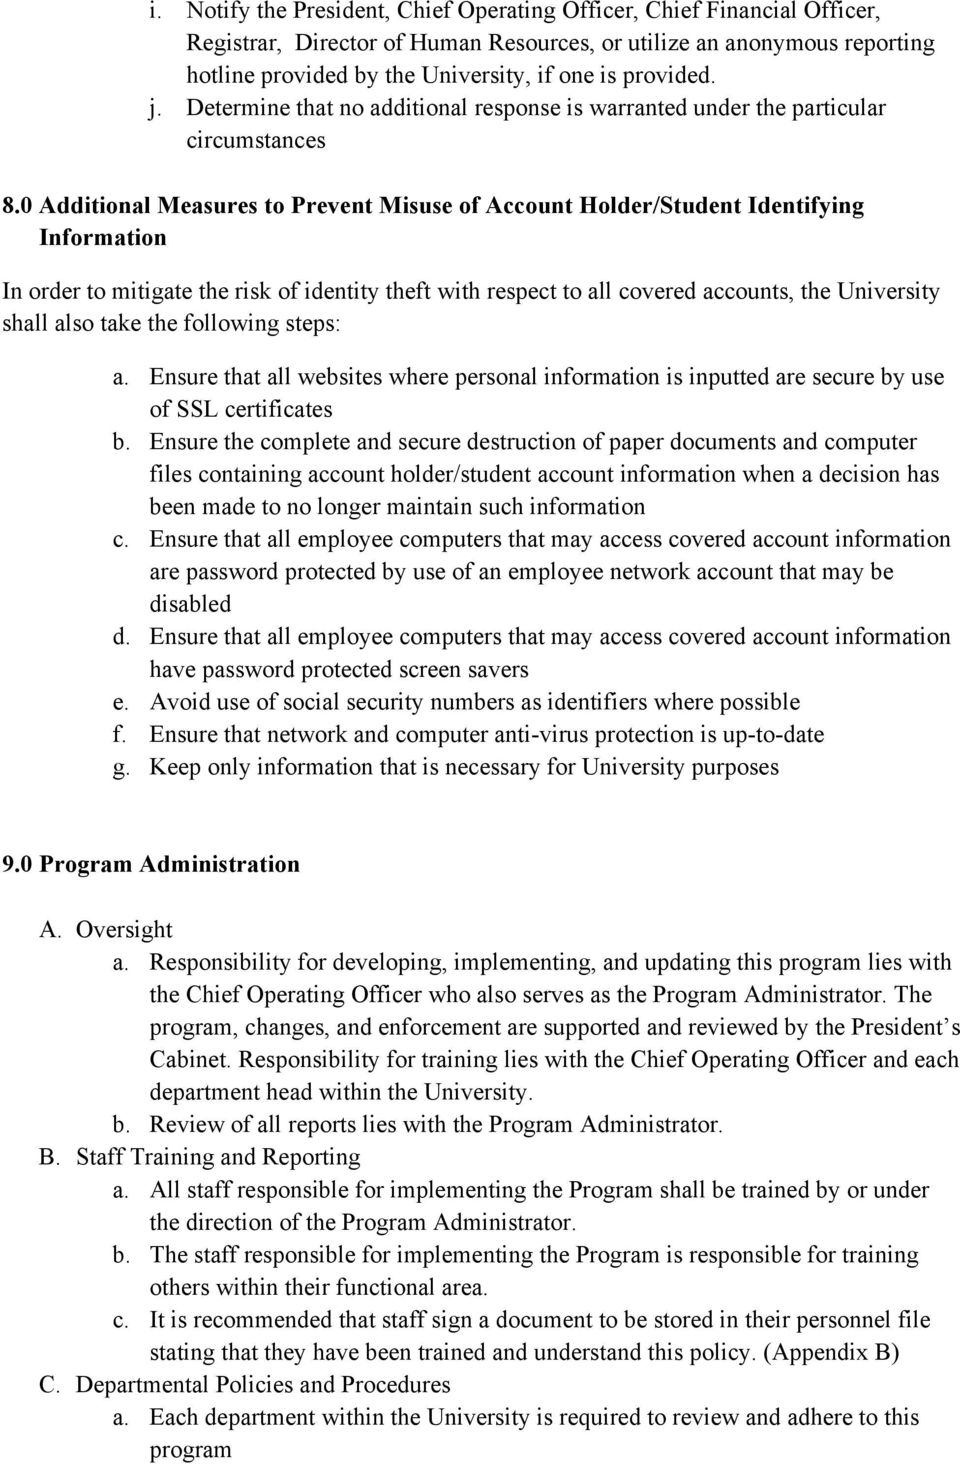 0 Additional Measures to Prevent Misuse of Account Holder/Student Identifying Information In order to mitigate the risk of identity theft with respect to all covered accounts, the University shall